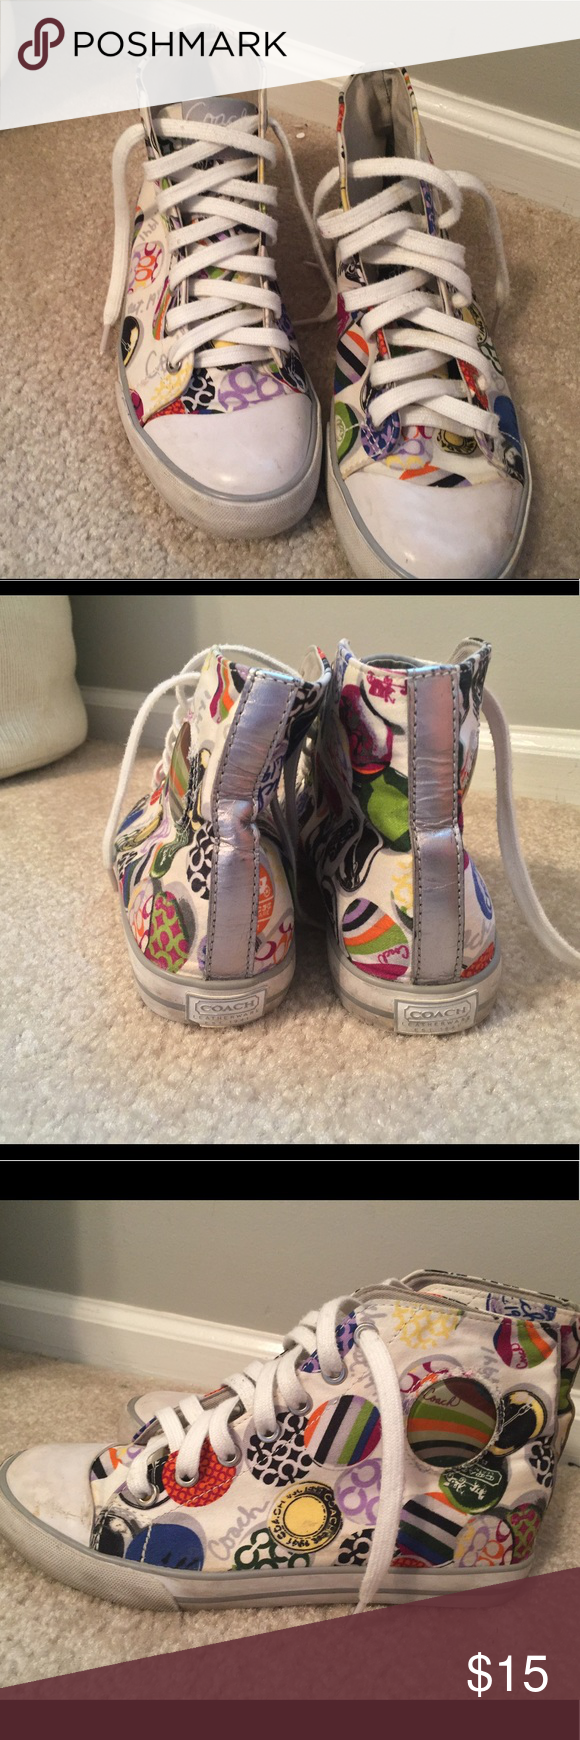 Coach high top sneakers!! Love these sneakers!! :)) I wore them a lot so they do show some signs of wear, but otherwise in good condition! Super fun pattern too! Coach Shoes Sneakers